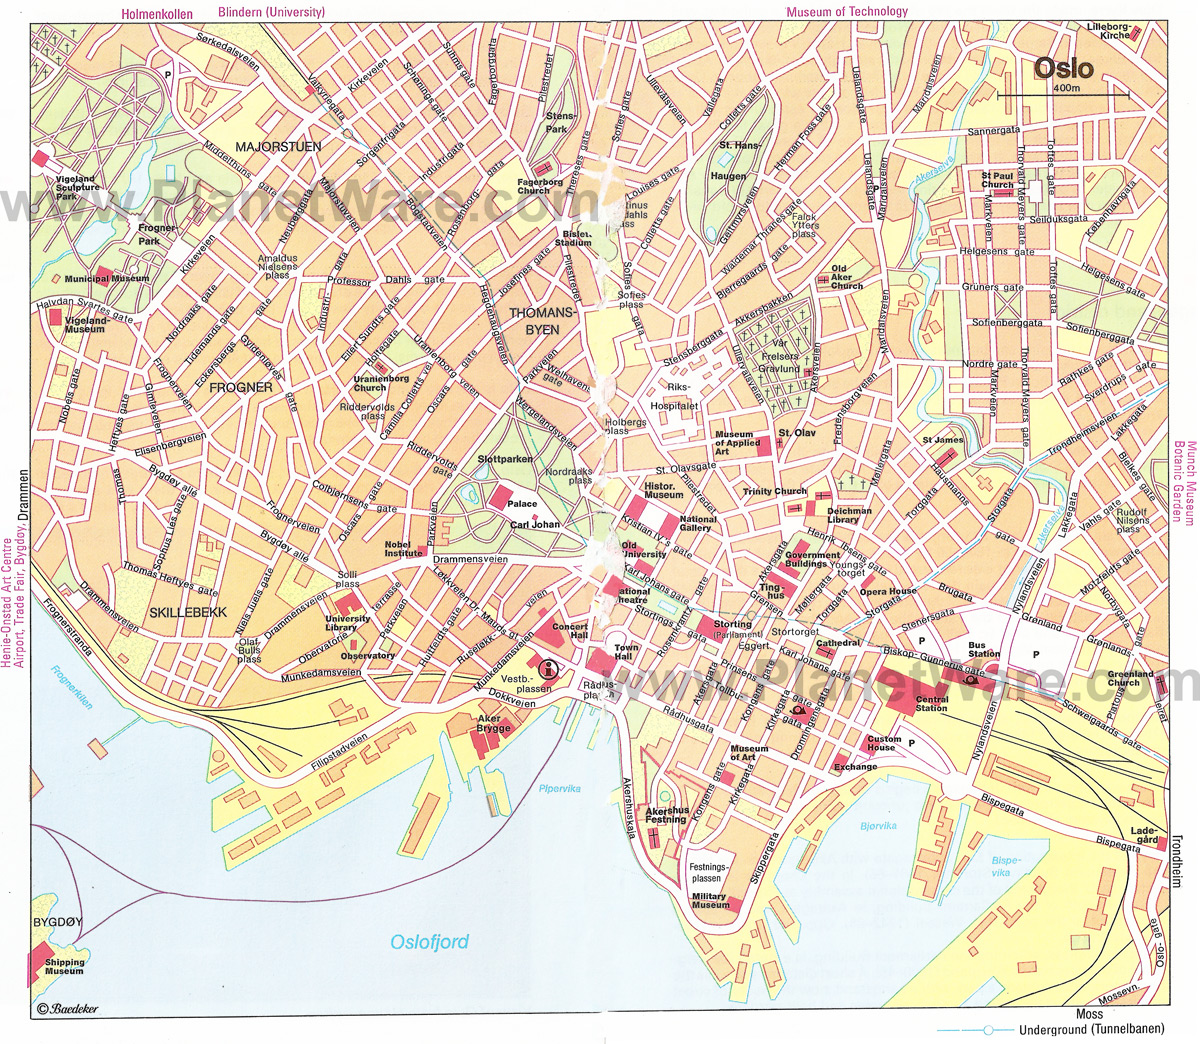 oslo karta Oslo Map   Detailed City and Metro Maps of Oslo for Download  oslo karta